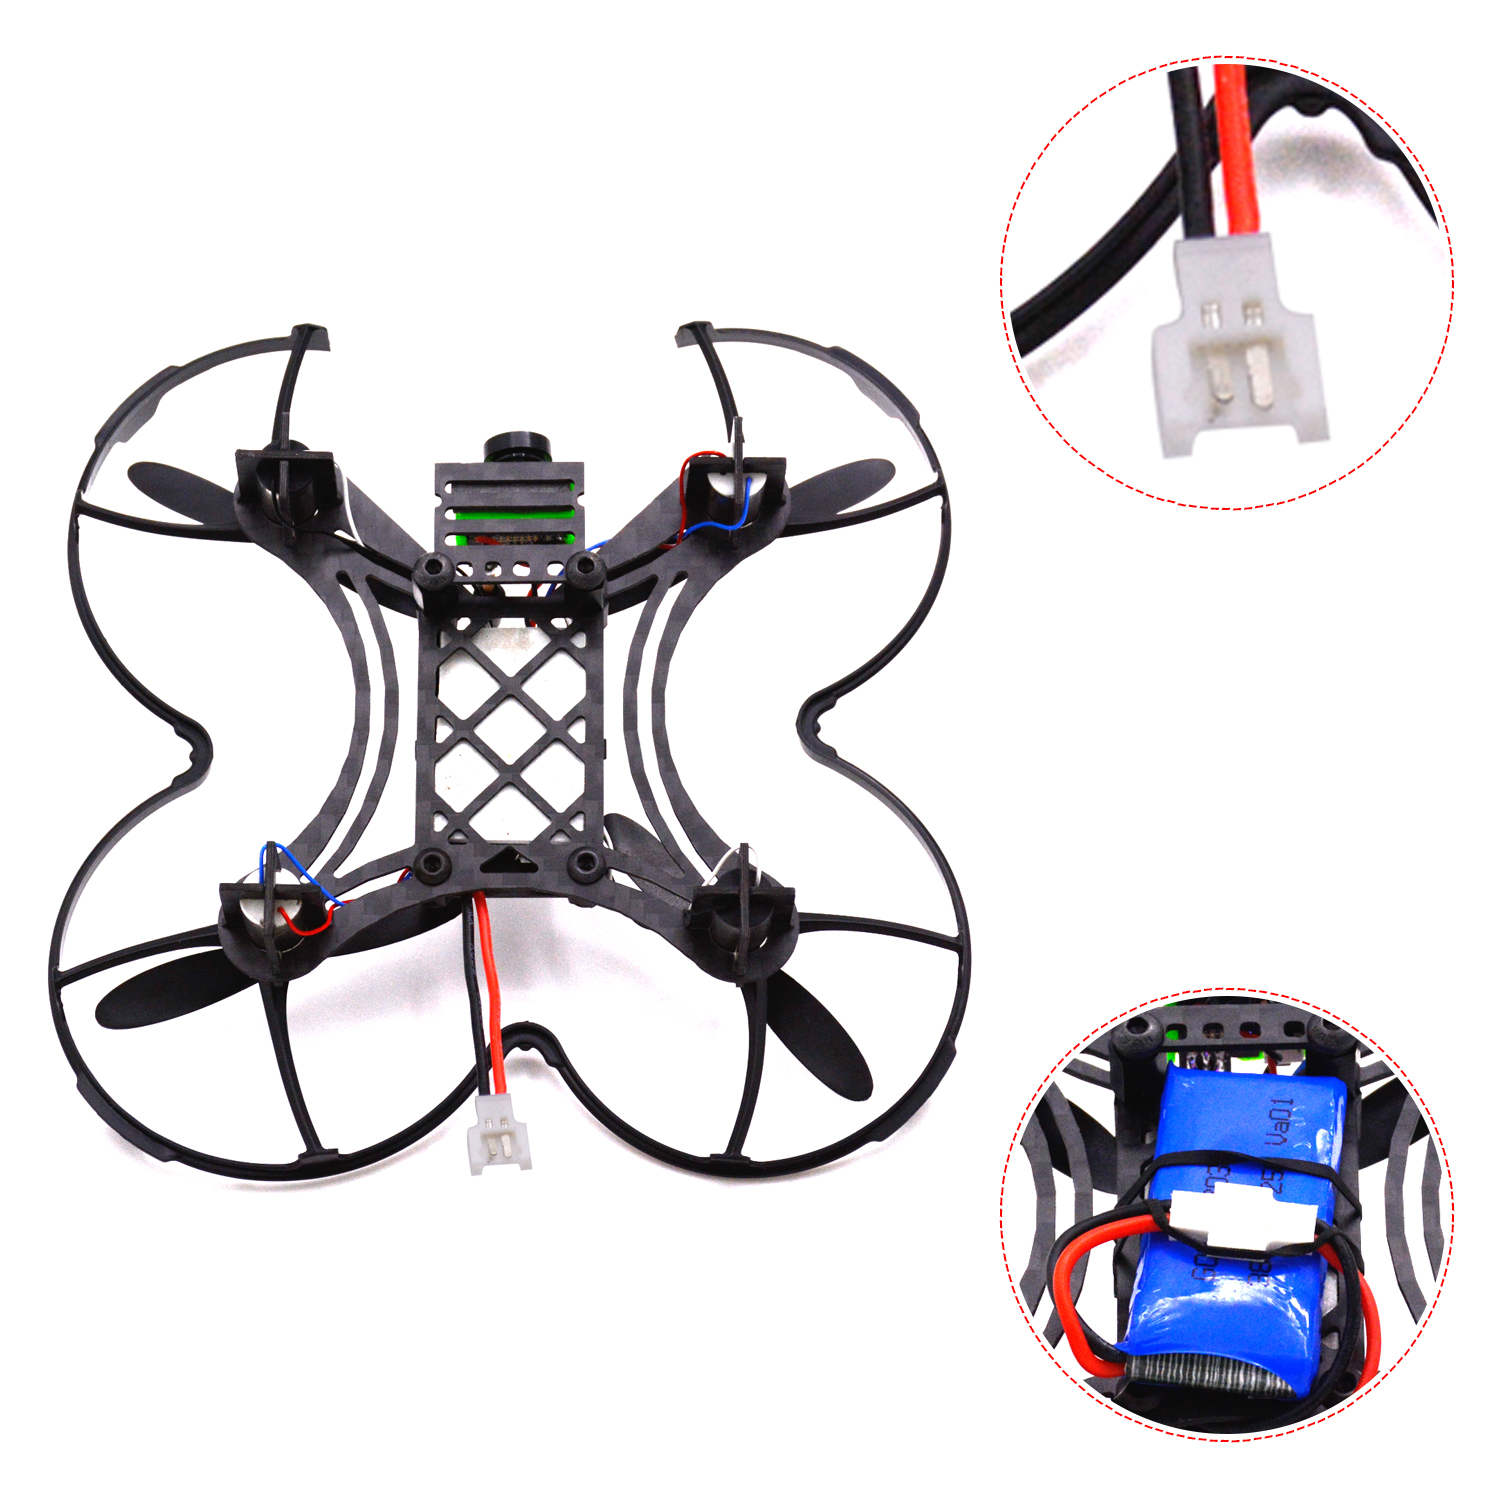 90mm Frame Kit &F3 Flight Controller Board 8520 motor&600TVL Camera RC plane 90mm Micro FPV Racing Quadcopter Spare Parts